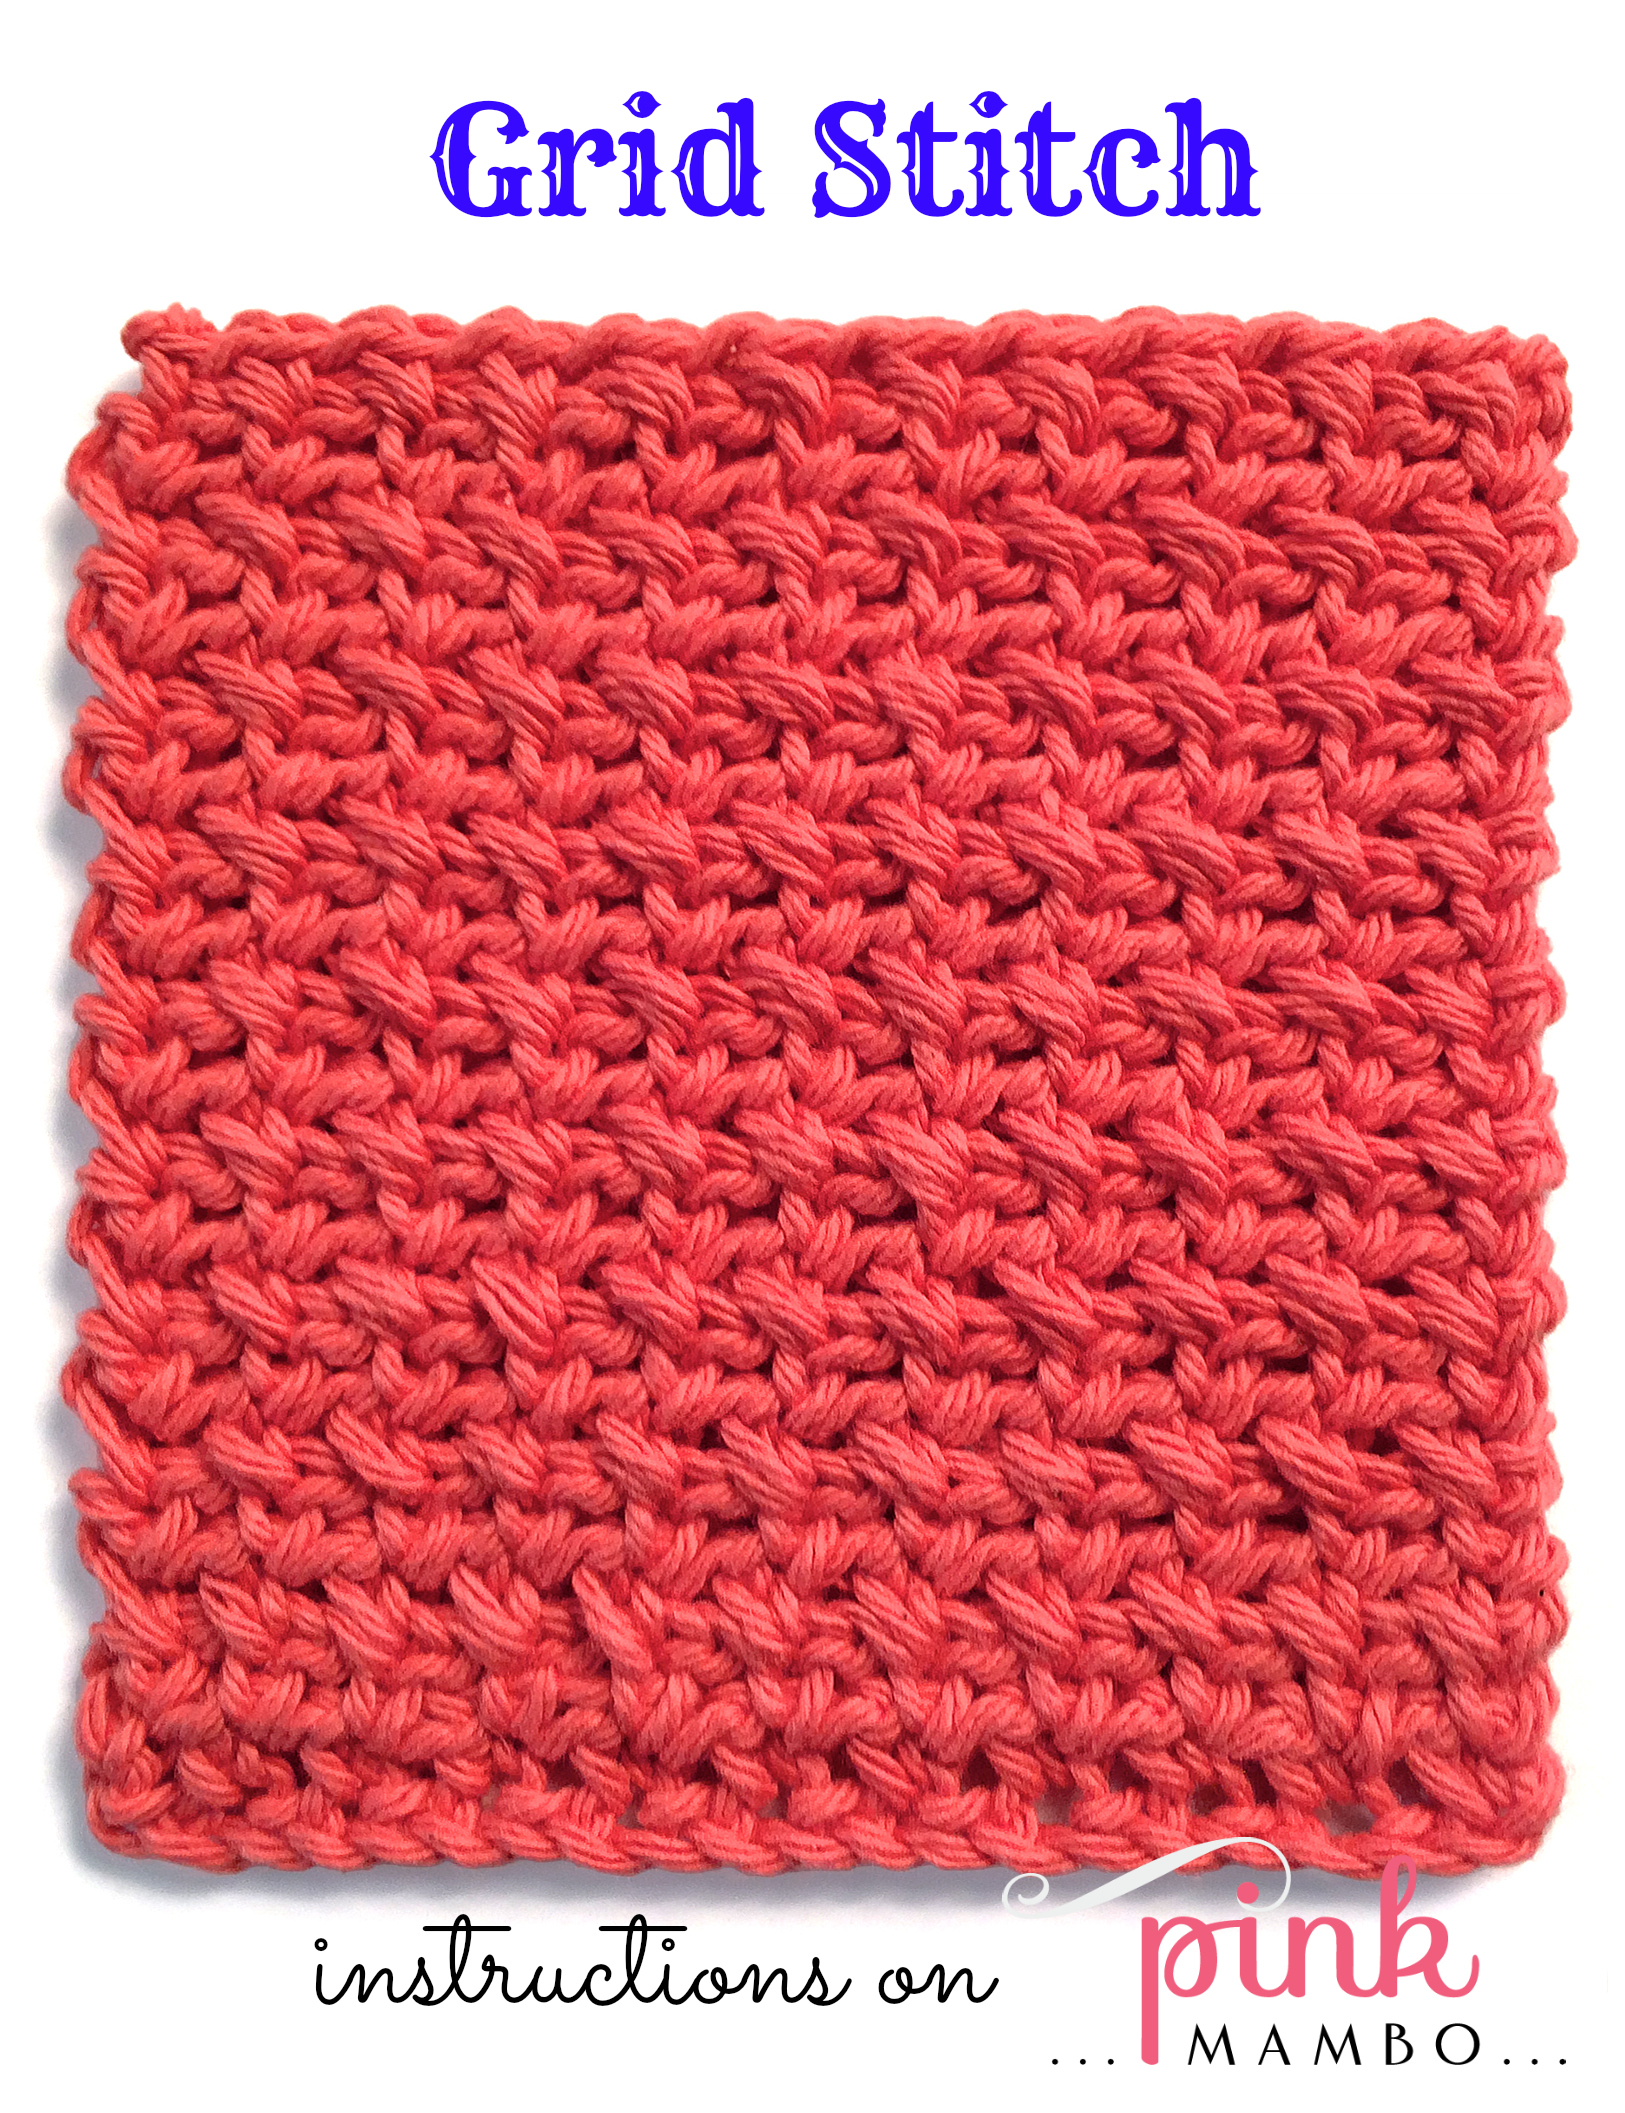 Crochet Stitches Gallery : Gallery images and information: Different Crochet Stitches Patterns